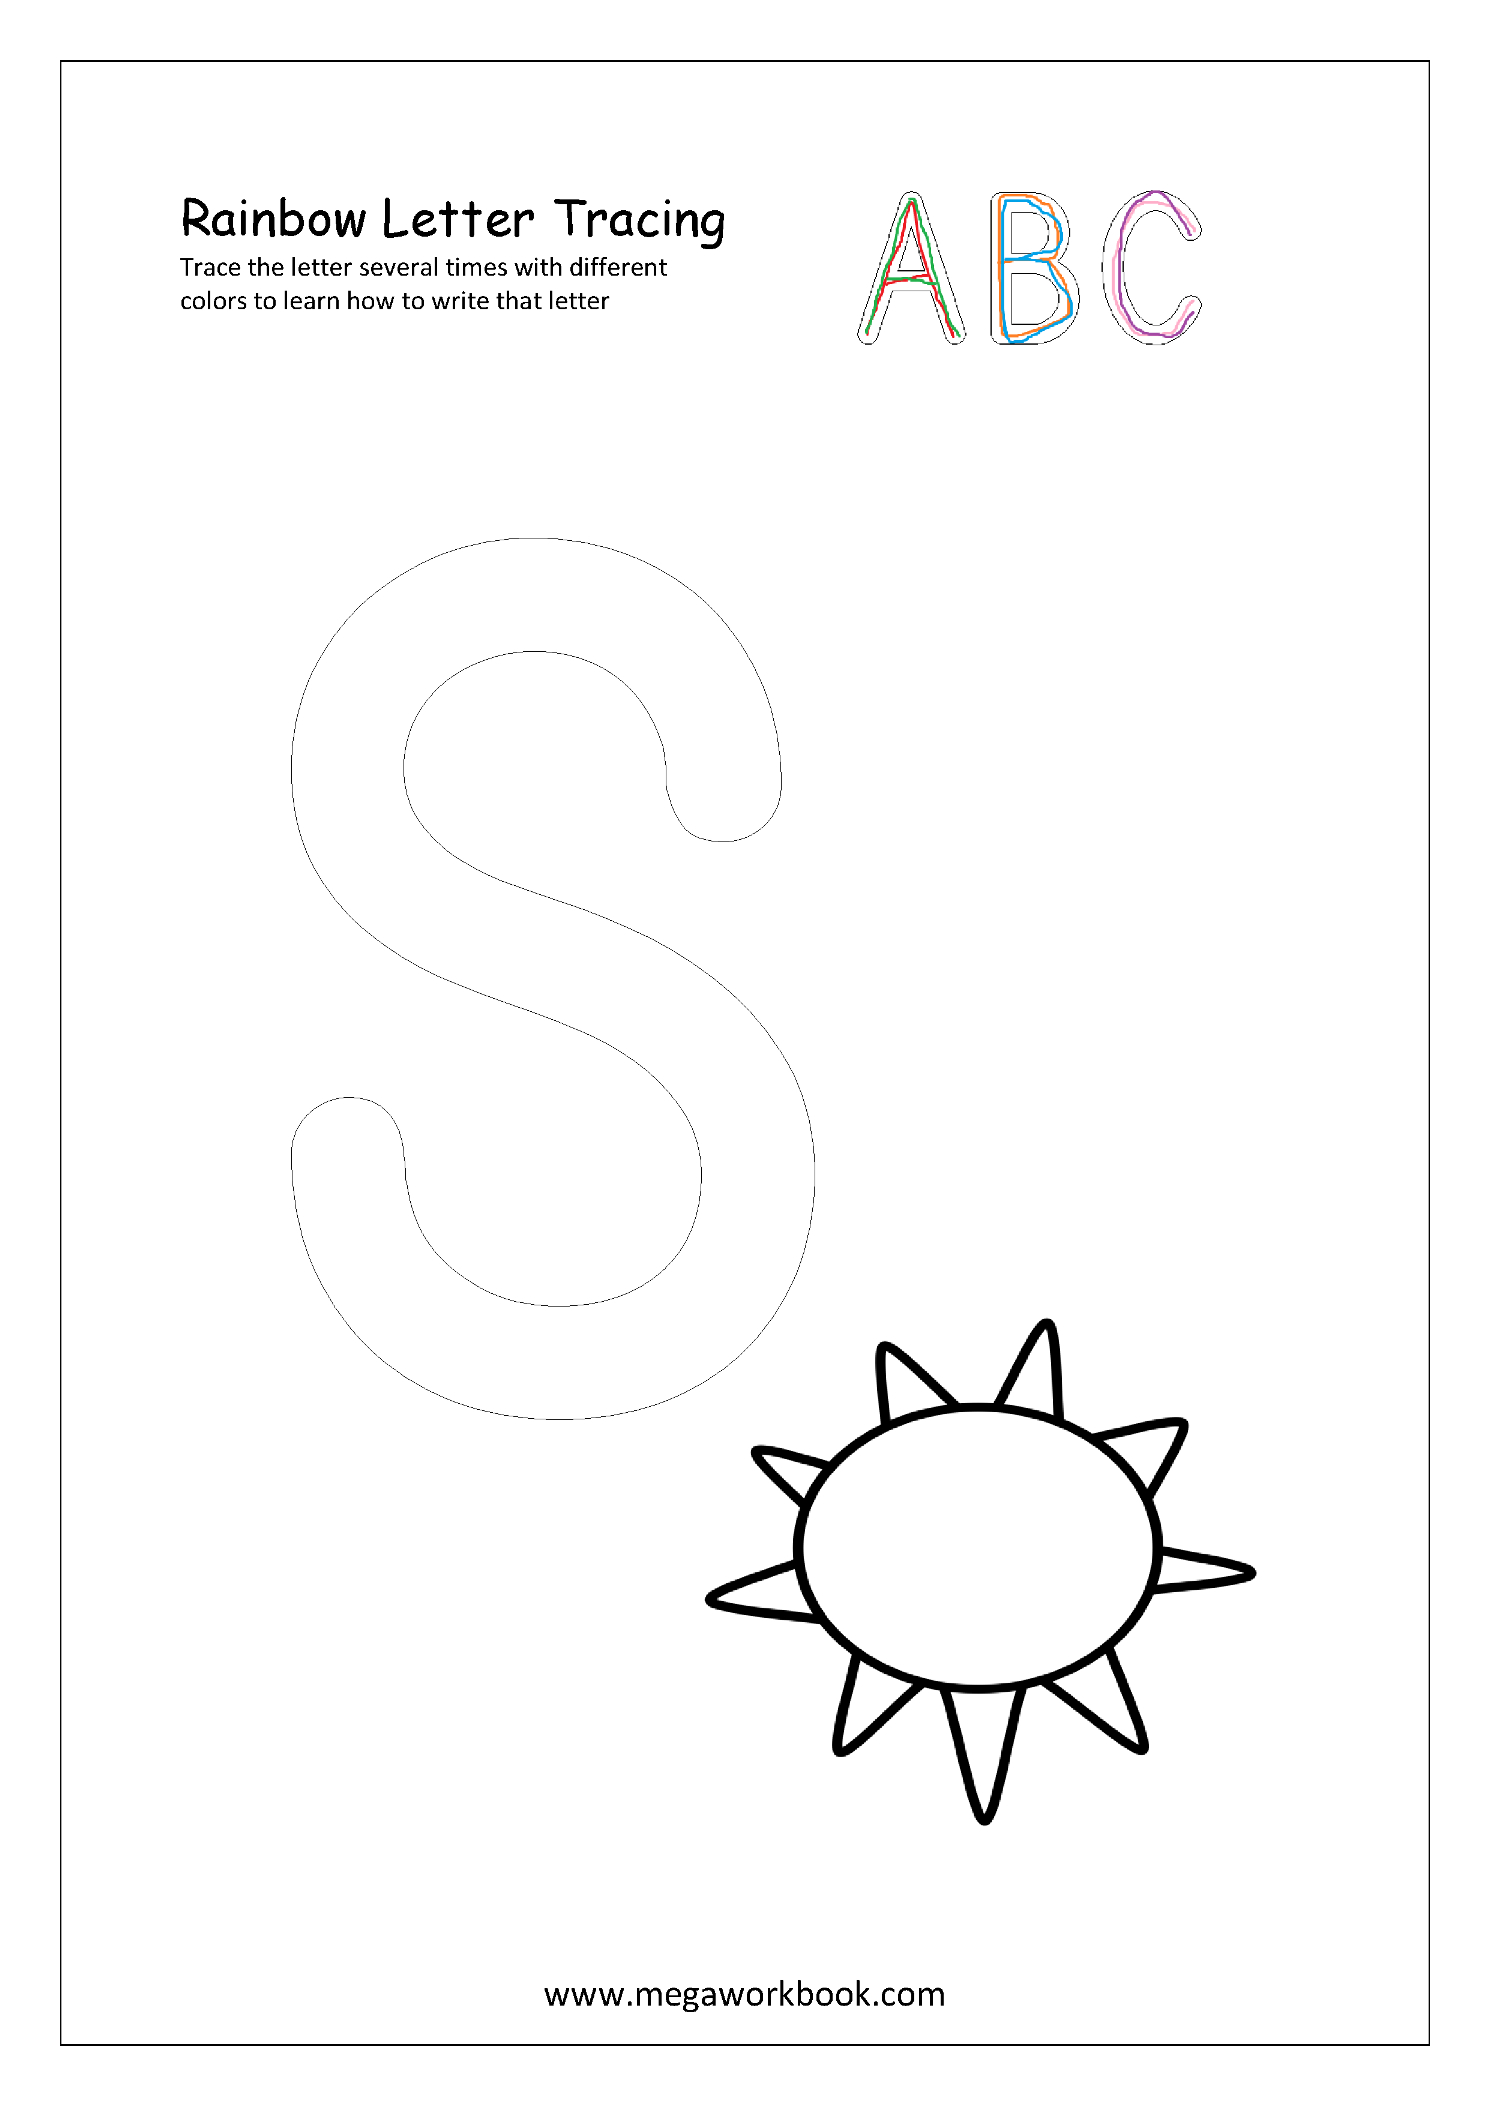 Free Printable Rainbow Writing Worksheets - Rainbow Letter within Rainbow Name Tracing